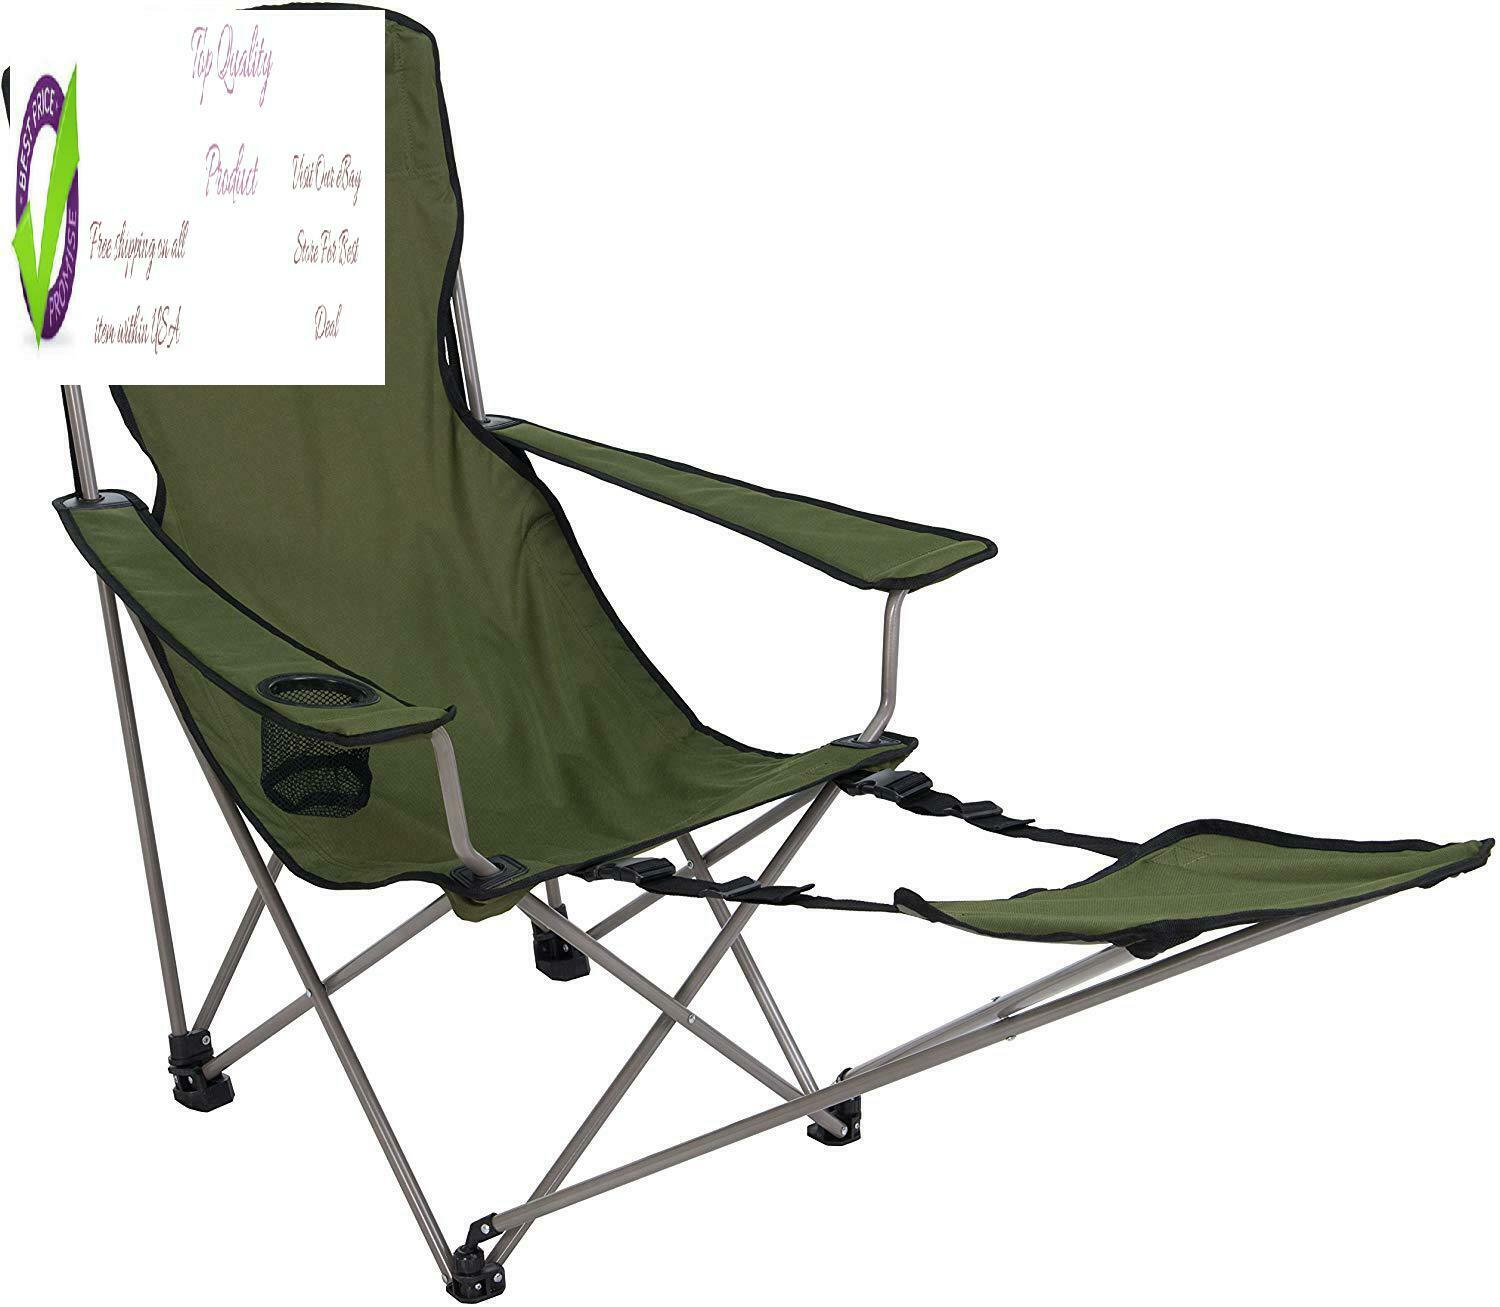 Alps Mountainee Escape Camp Chair, Green